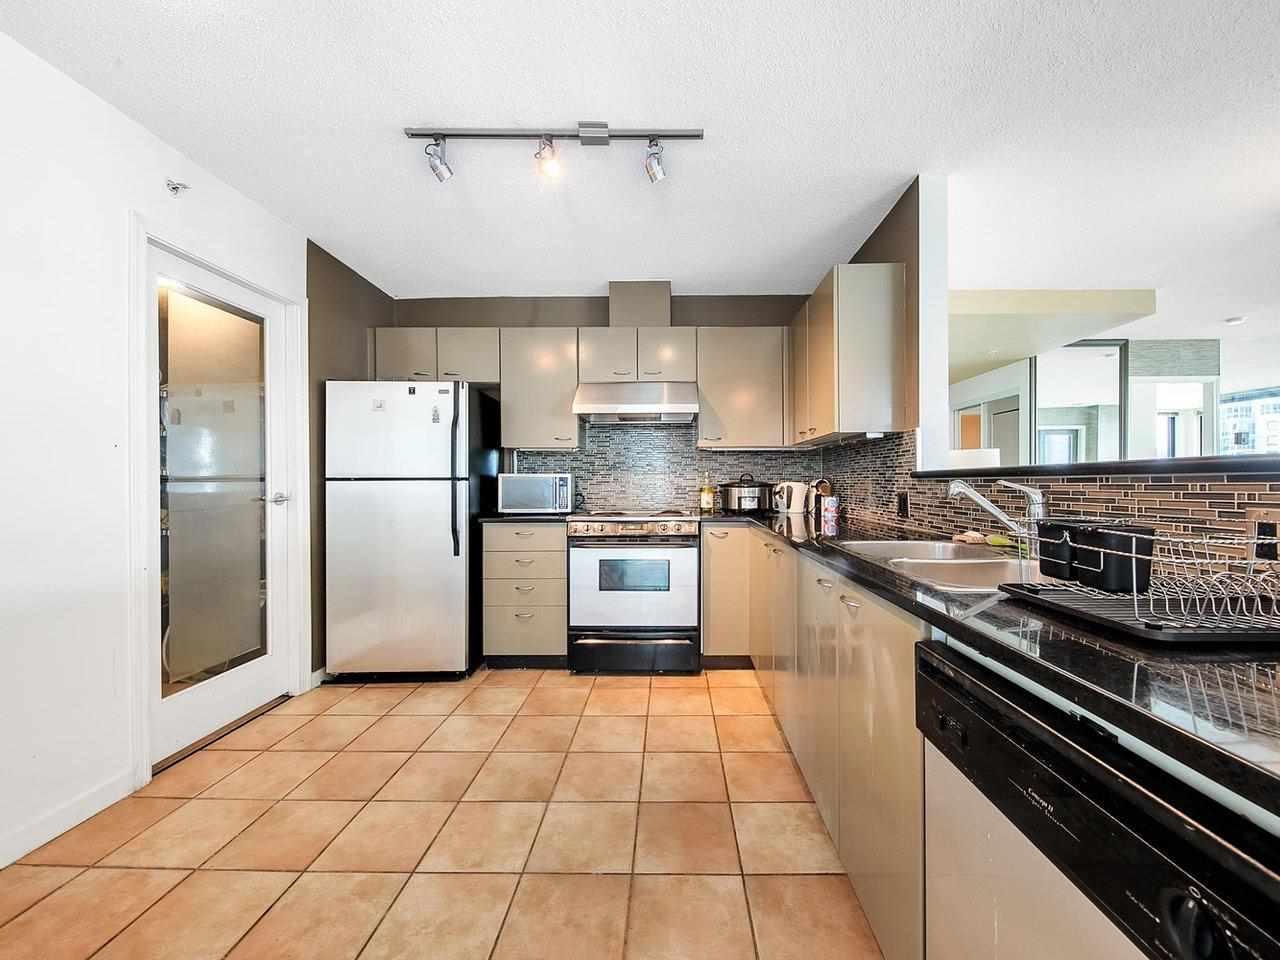 2701 1331 ALBERNI STREET - West End VW Apartment/Condo for sale, 3 Bedrooms (R2576100) - #9